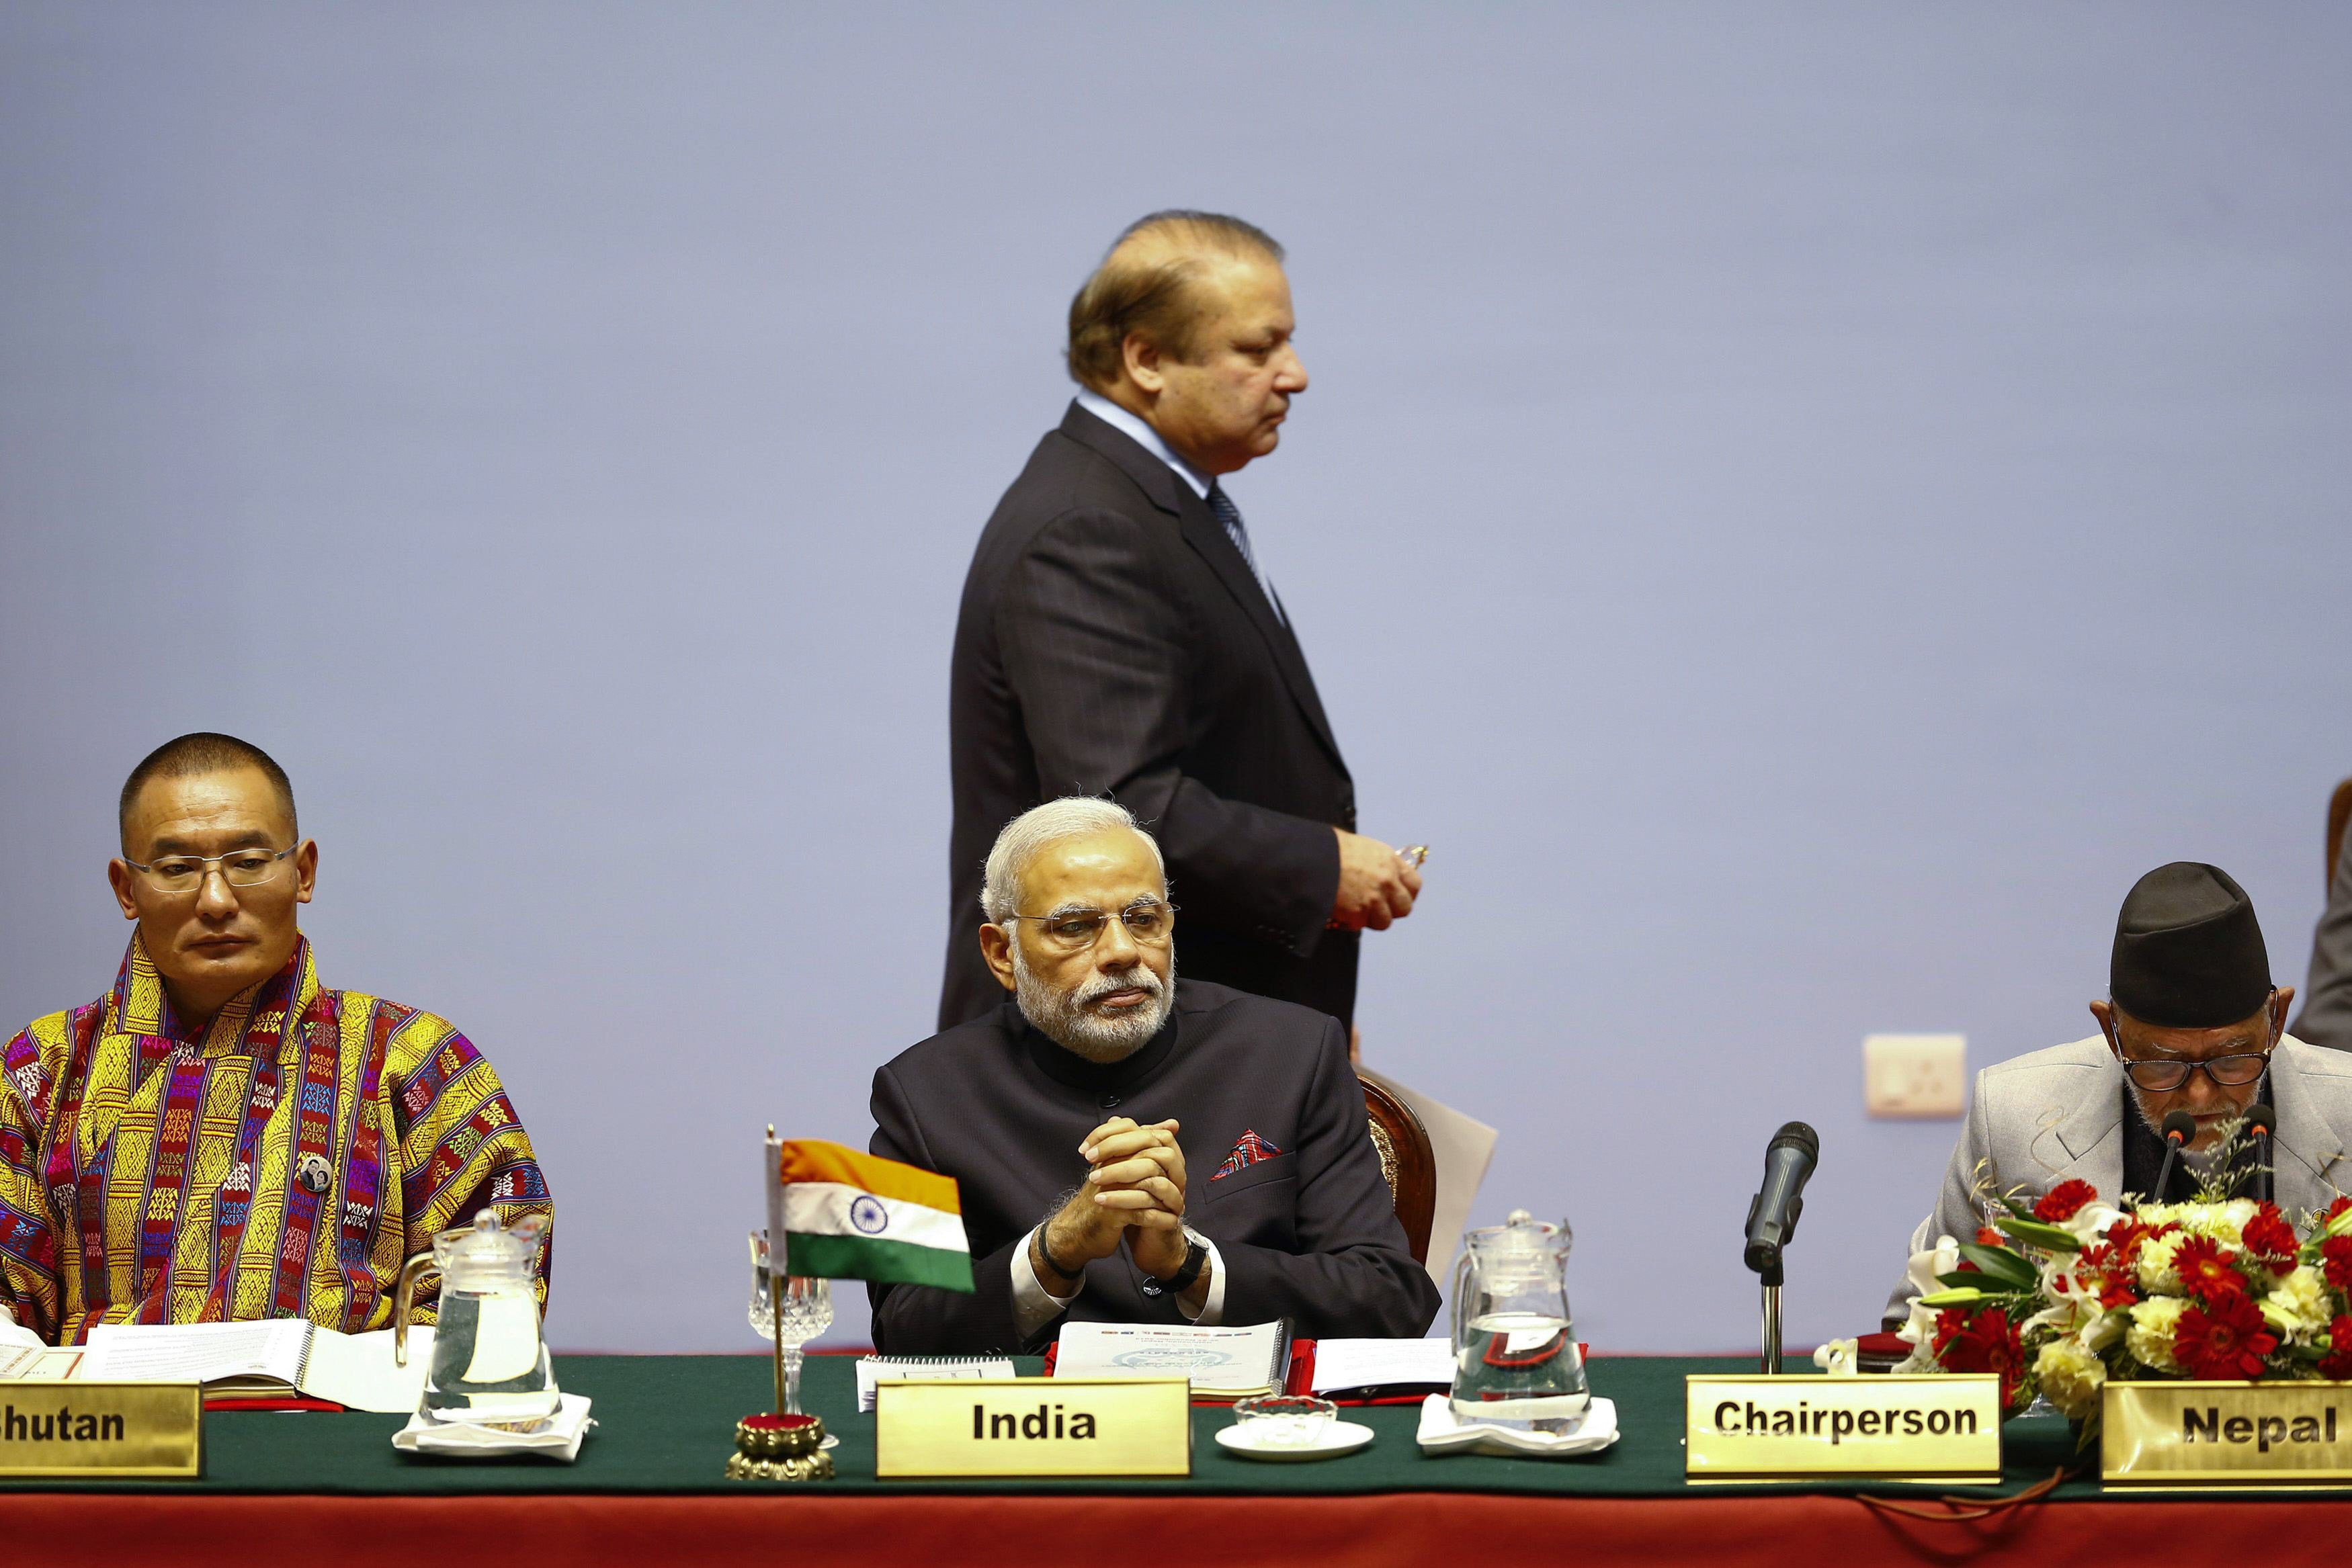 Pakistan's prime minister, Nawaz Sharif, walks past Indian prime minister Narendra Modi at the 2014 SAARC summit in Kathmandu. Credit: Reuters